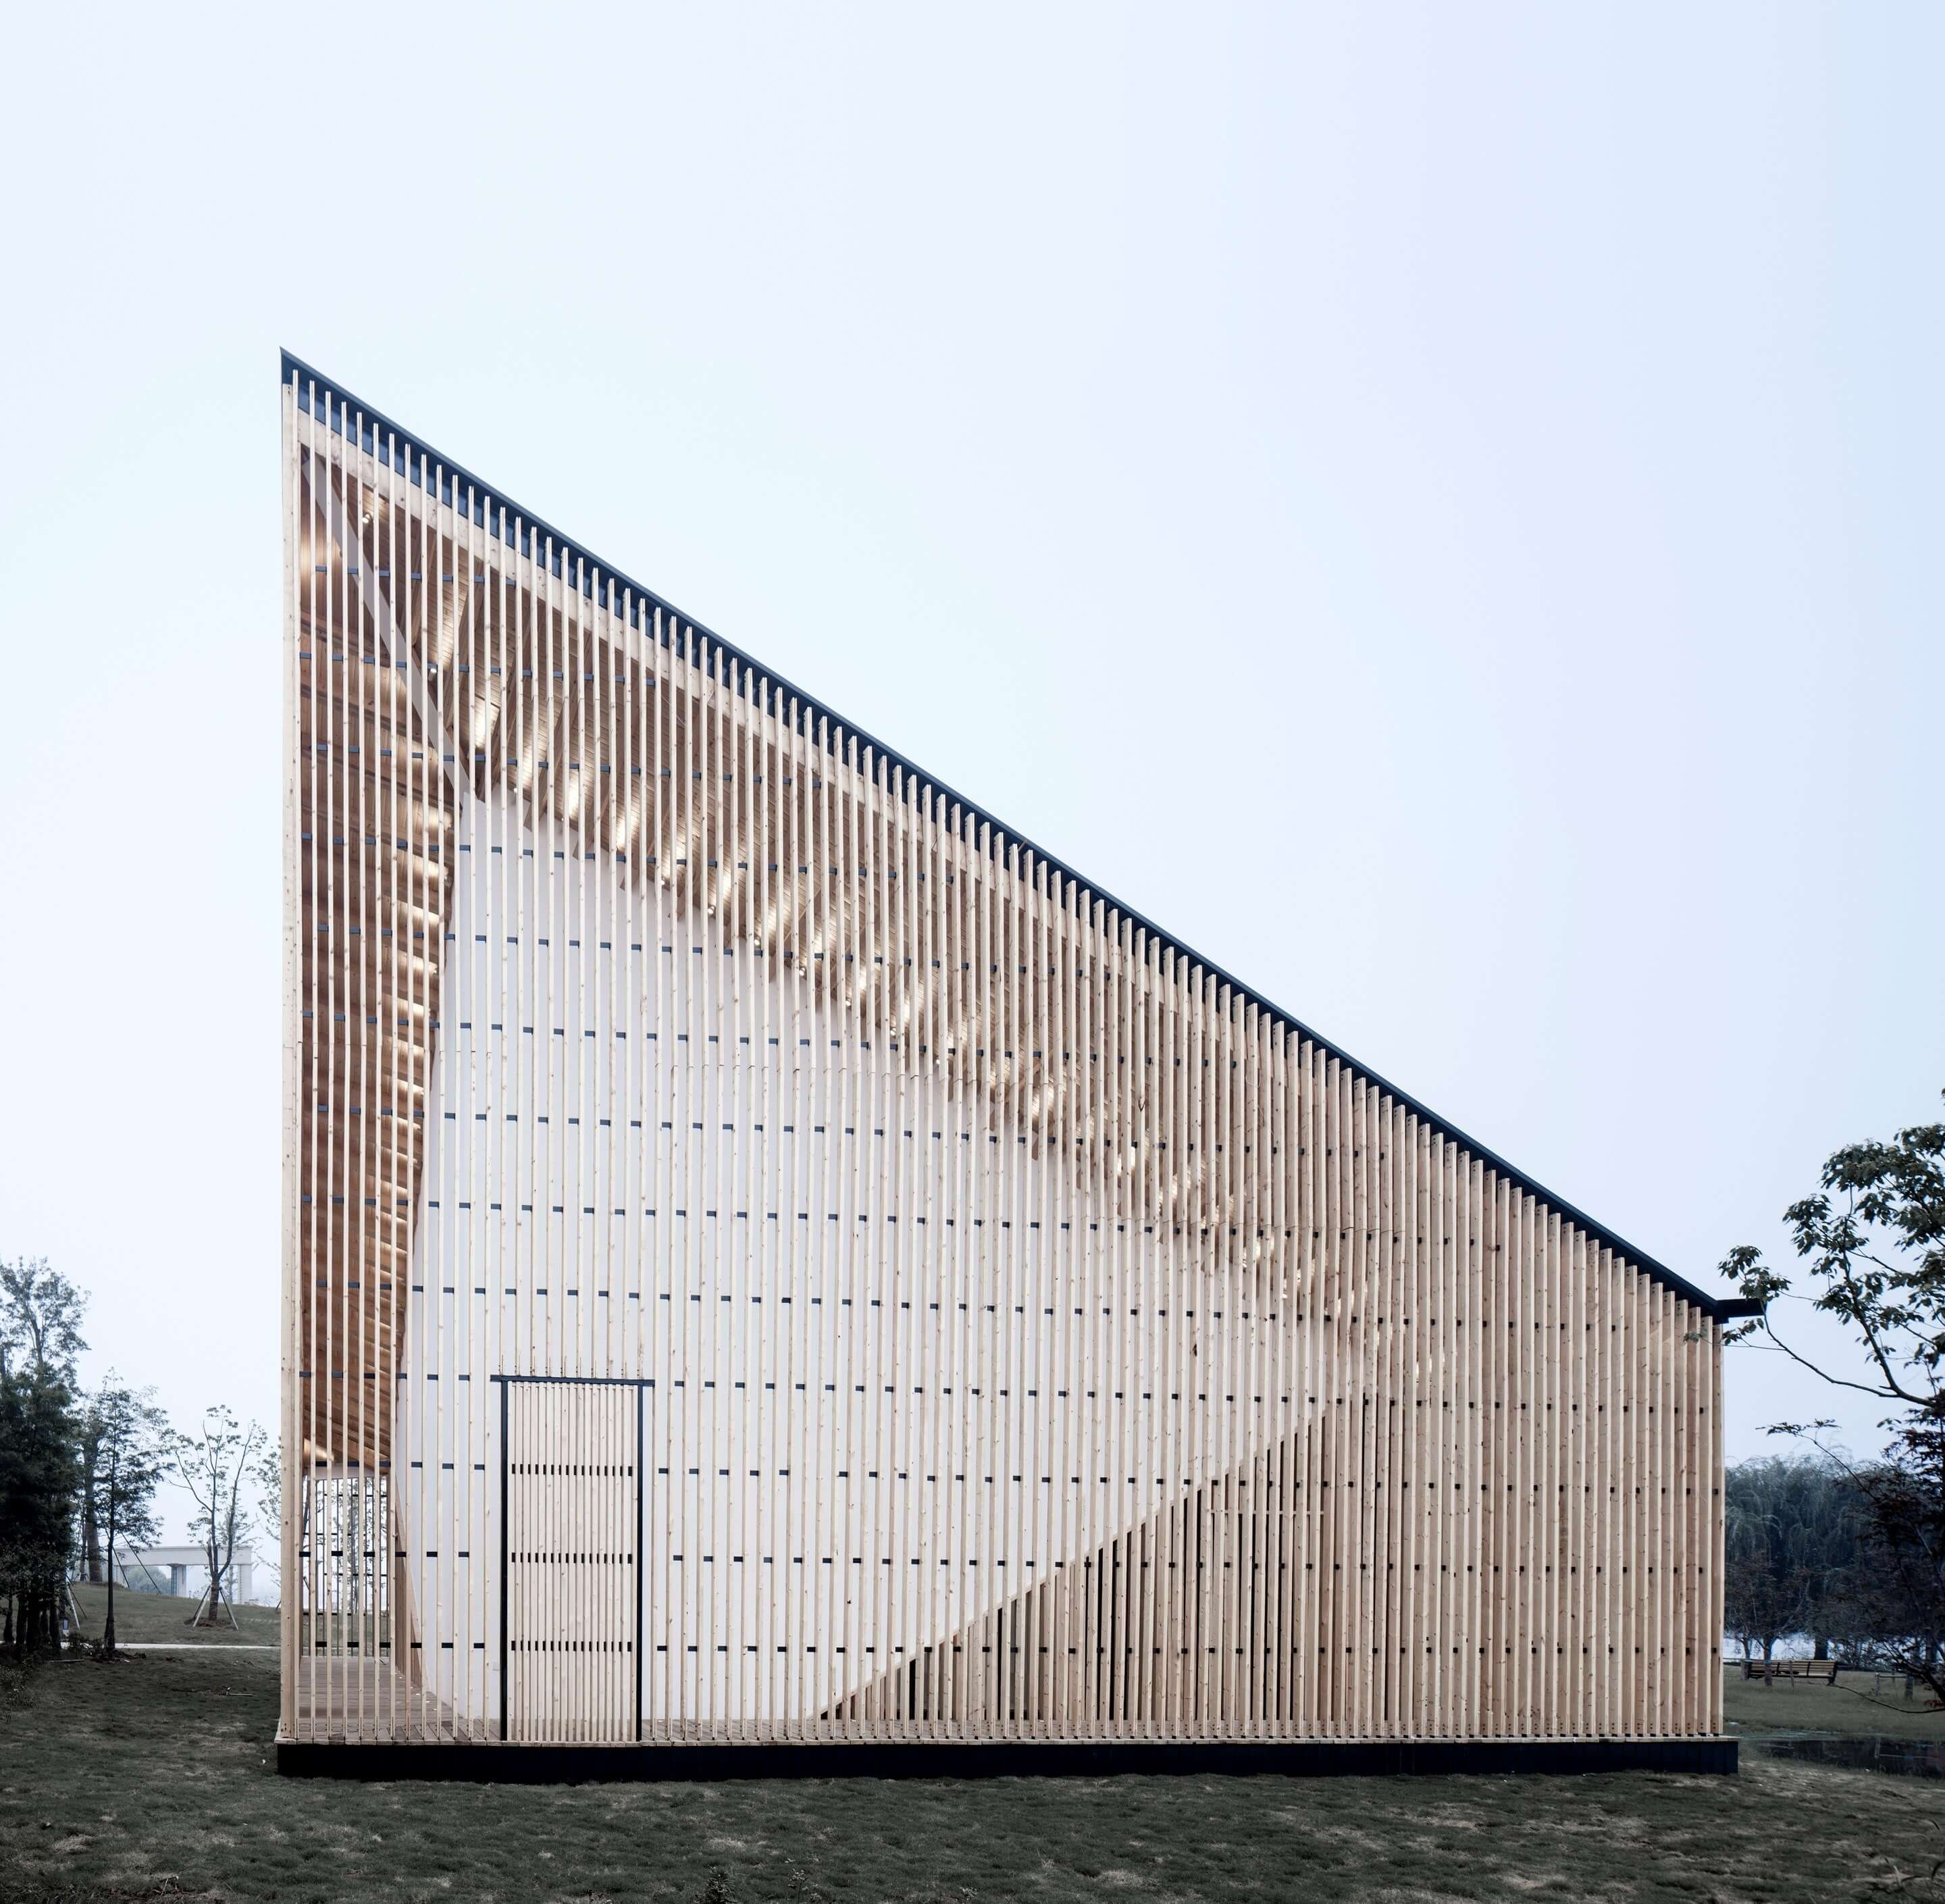 Nanjing Wanjing Garden Chapel by AZL Architects